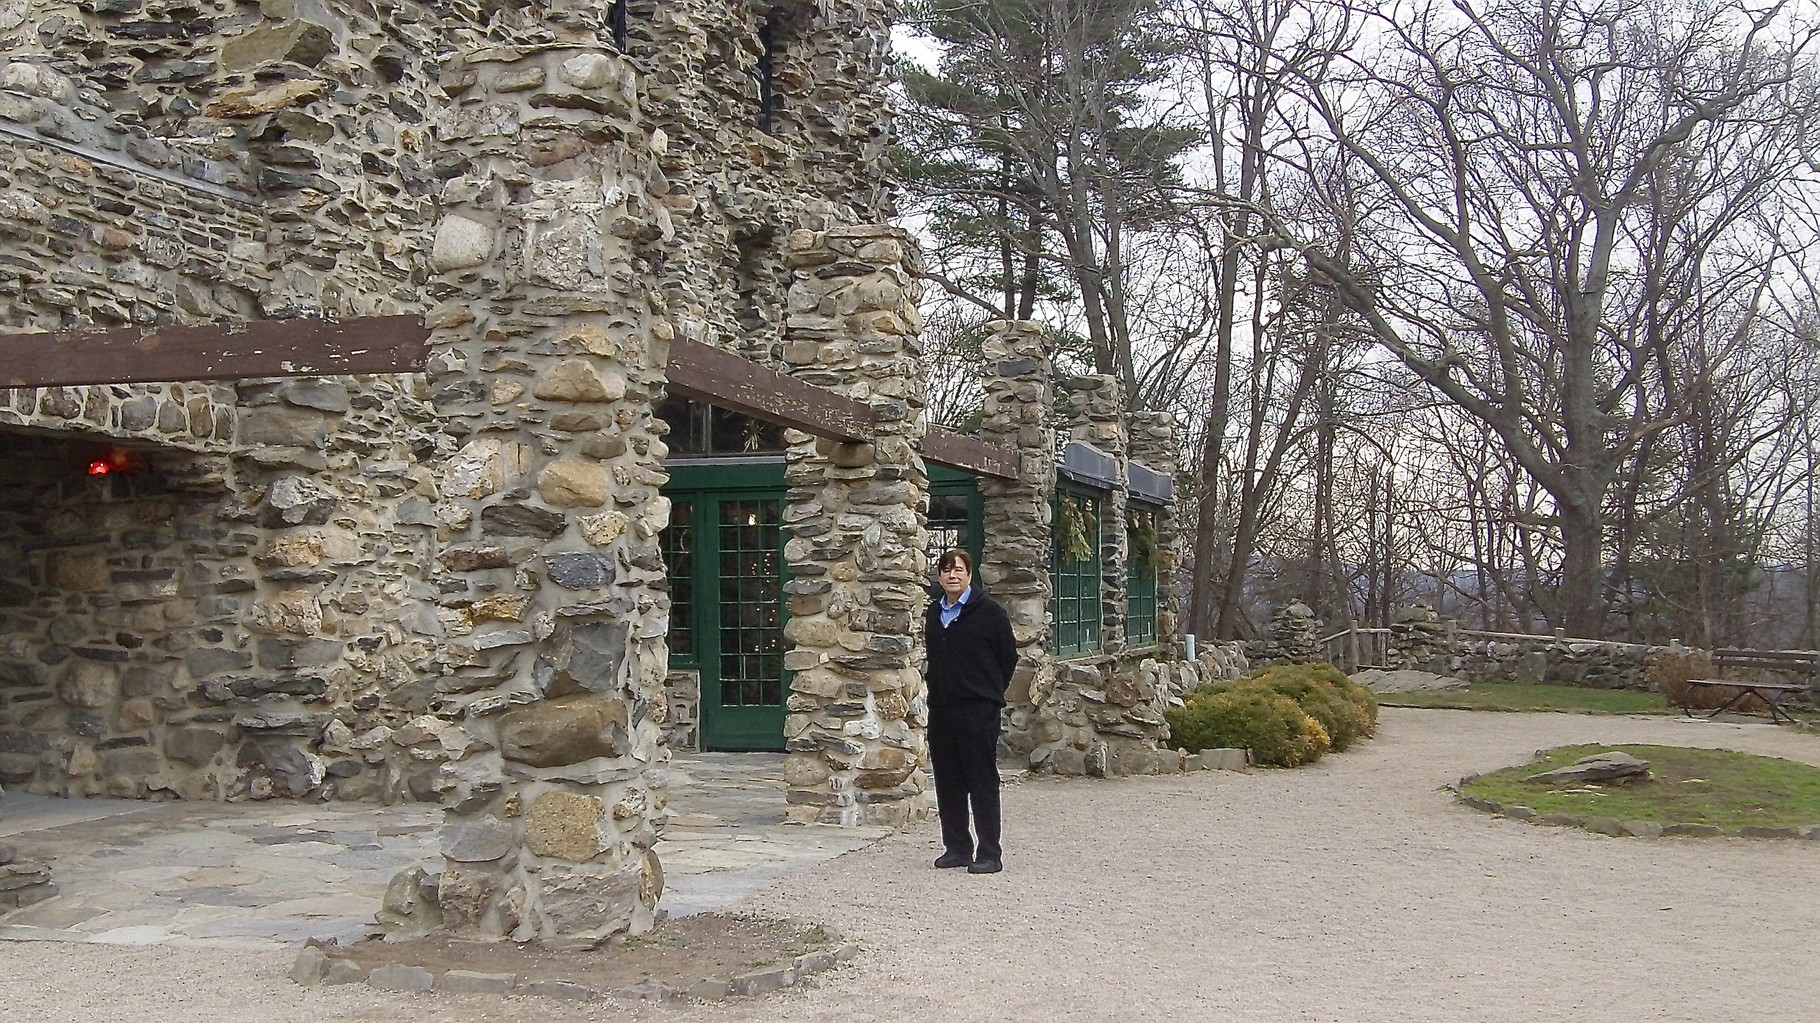 At Gillette Castle State Park, near Essex Ct  on December 13, 2015